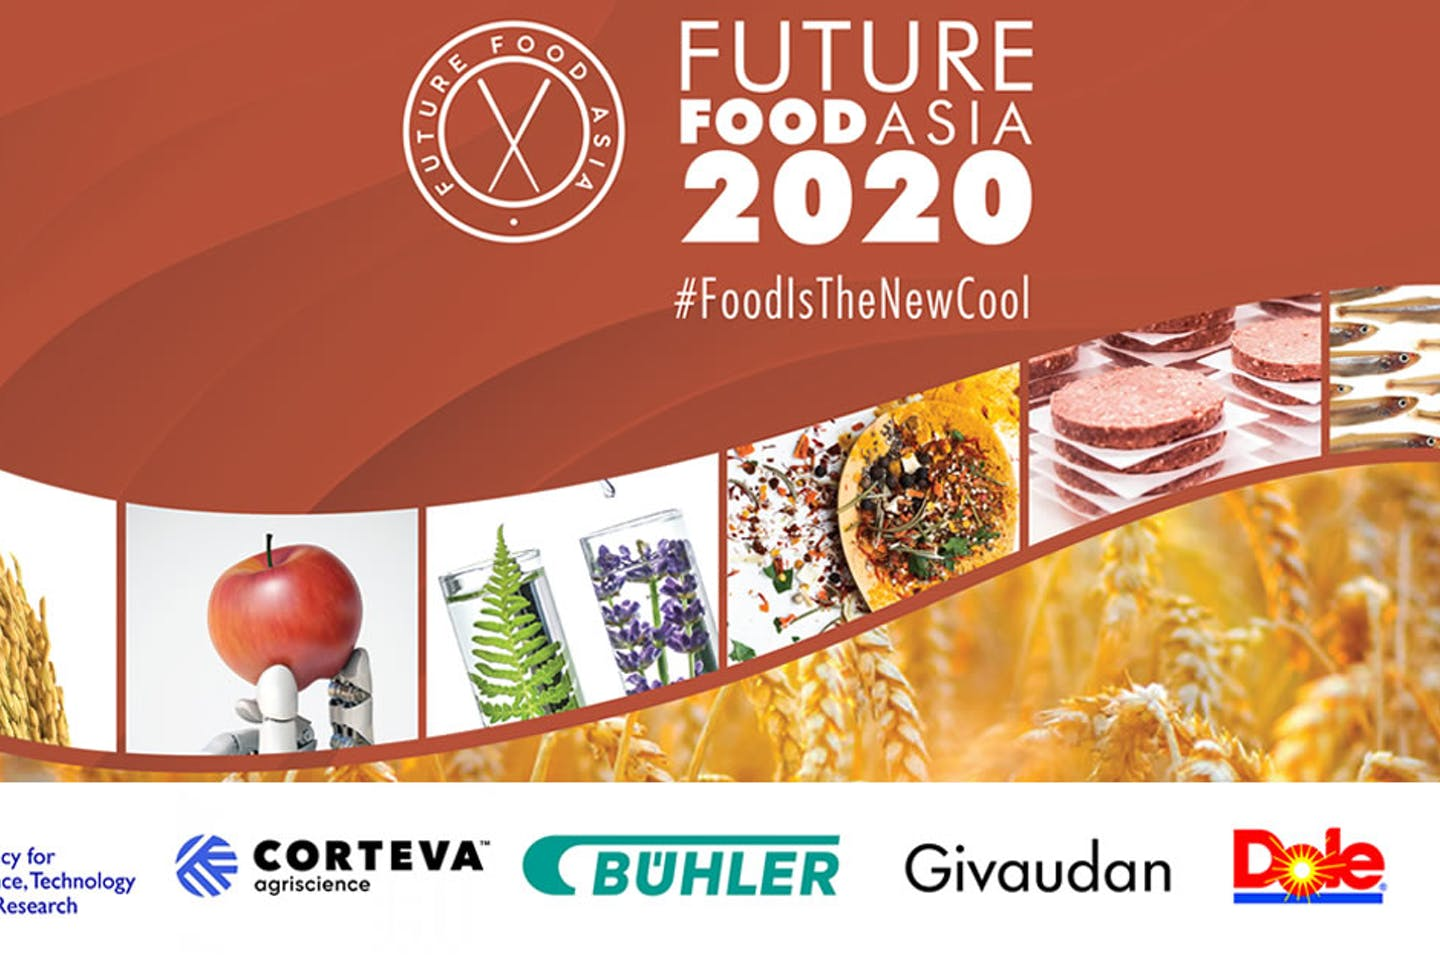 Announcing Future Food Asia 2020  #FoodIsTheNewCool